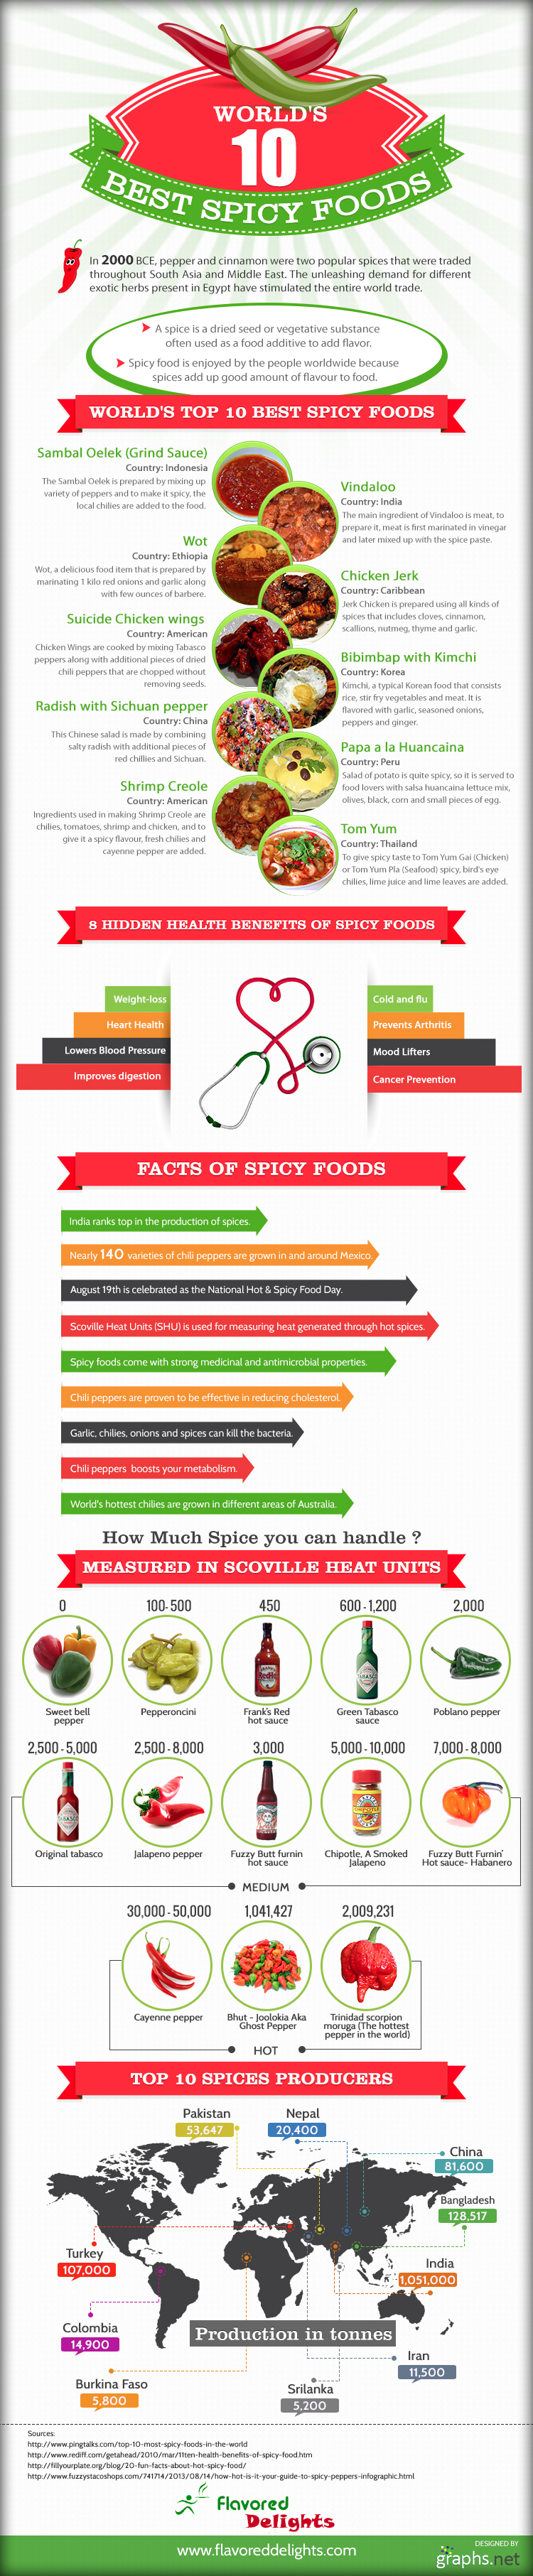 spicy-foods-infographic-v2